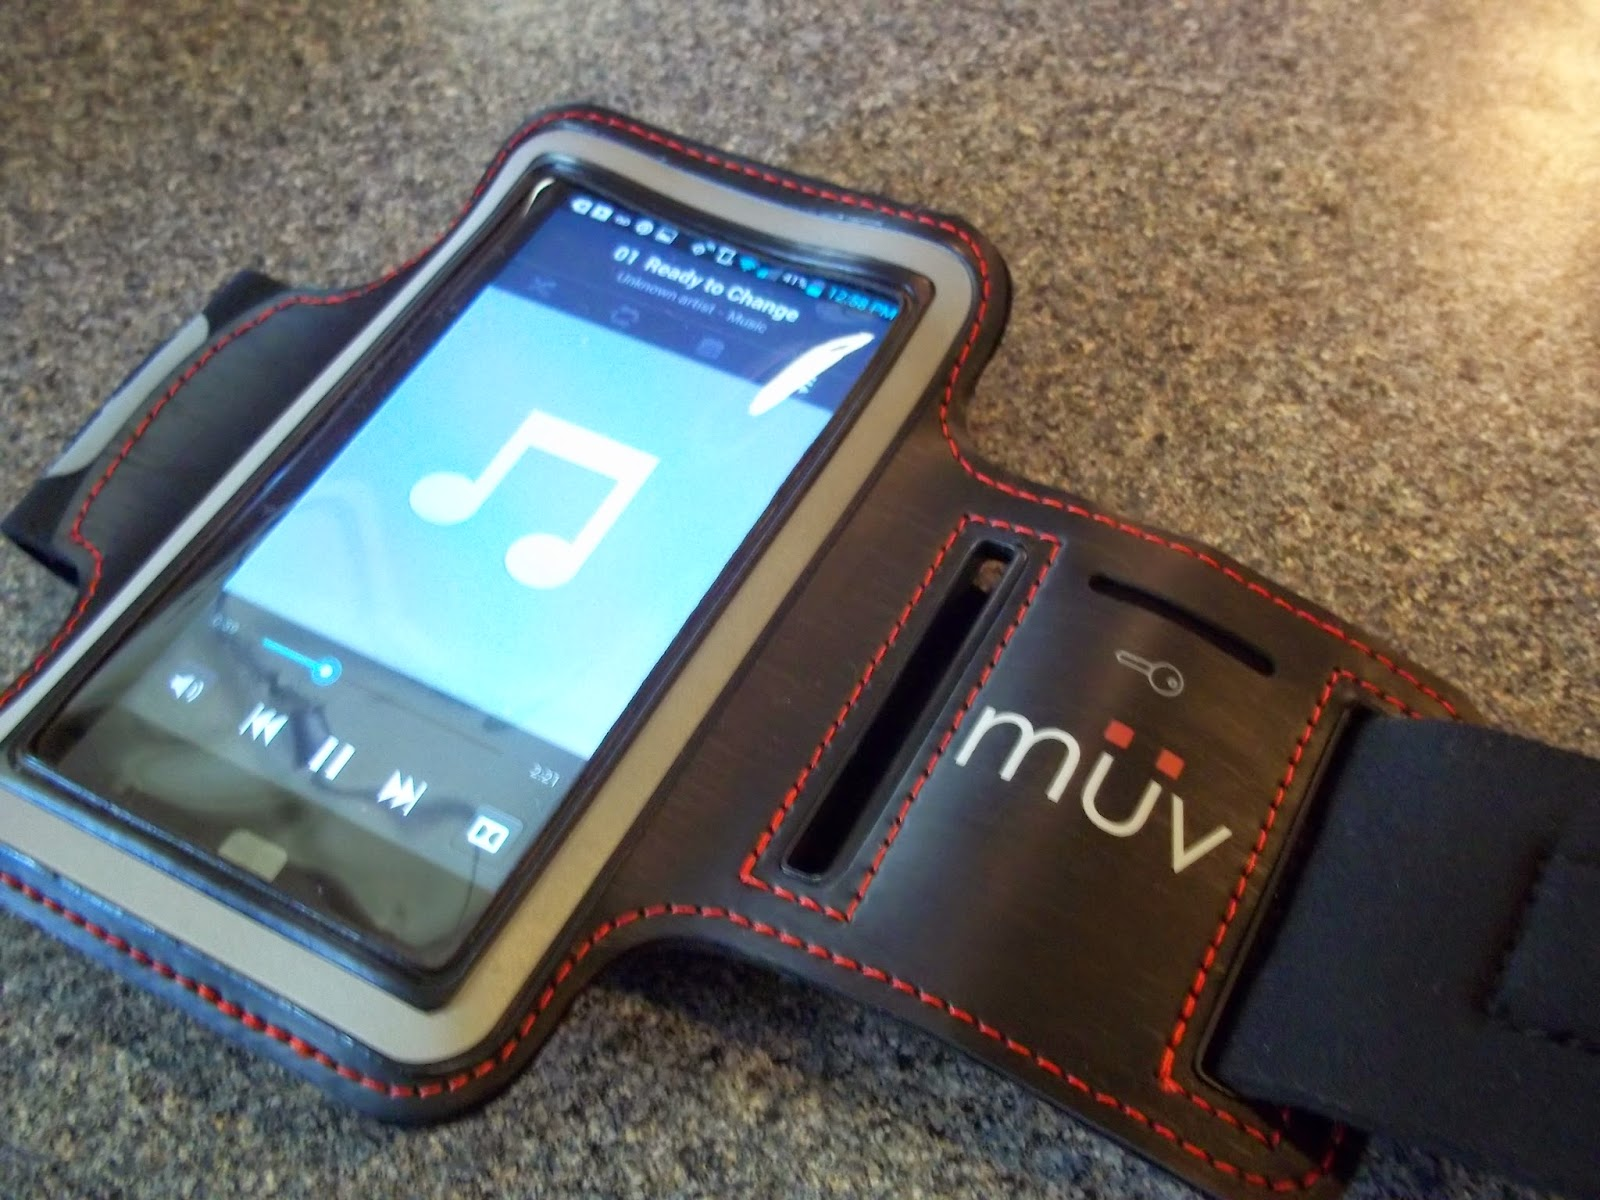 MuvUSA iPhone 5 Armband Review